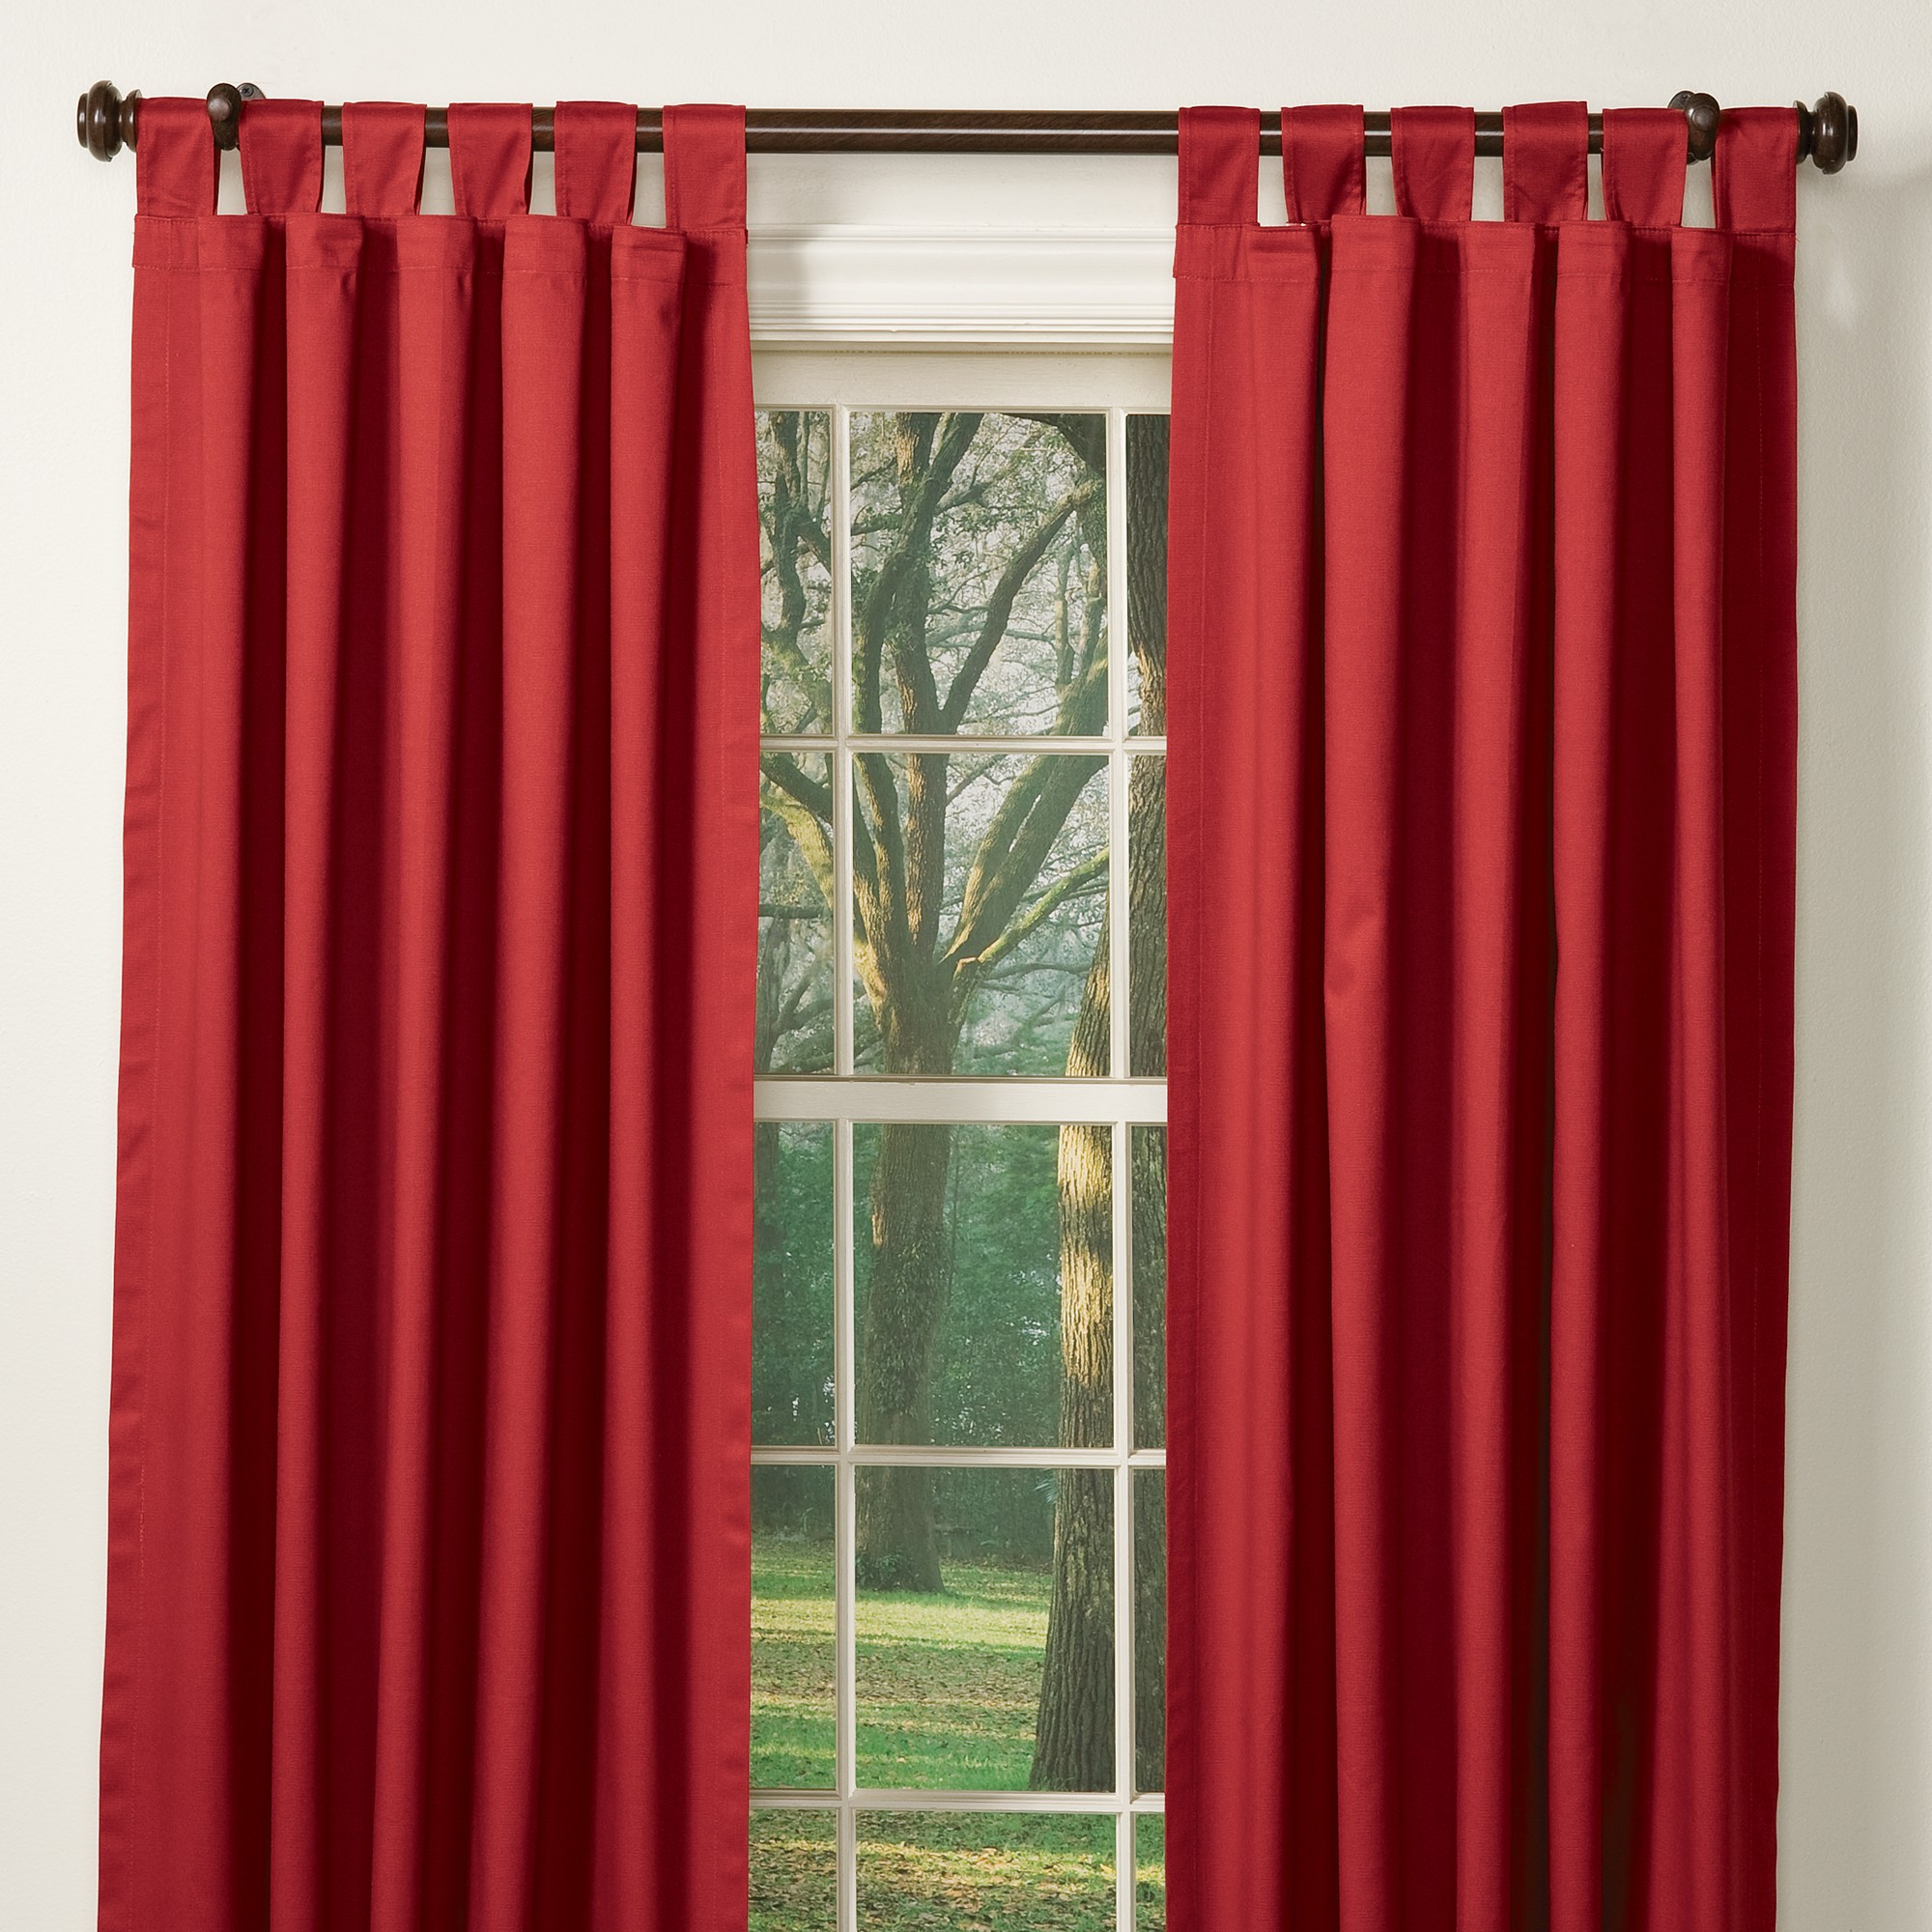 2000x2000px 6 Superb Insulating Curtains Picture in Others